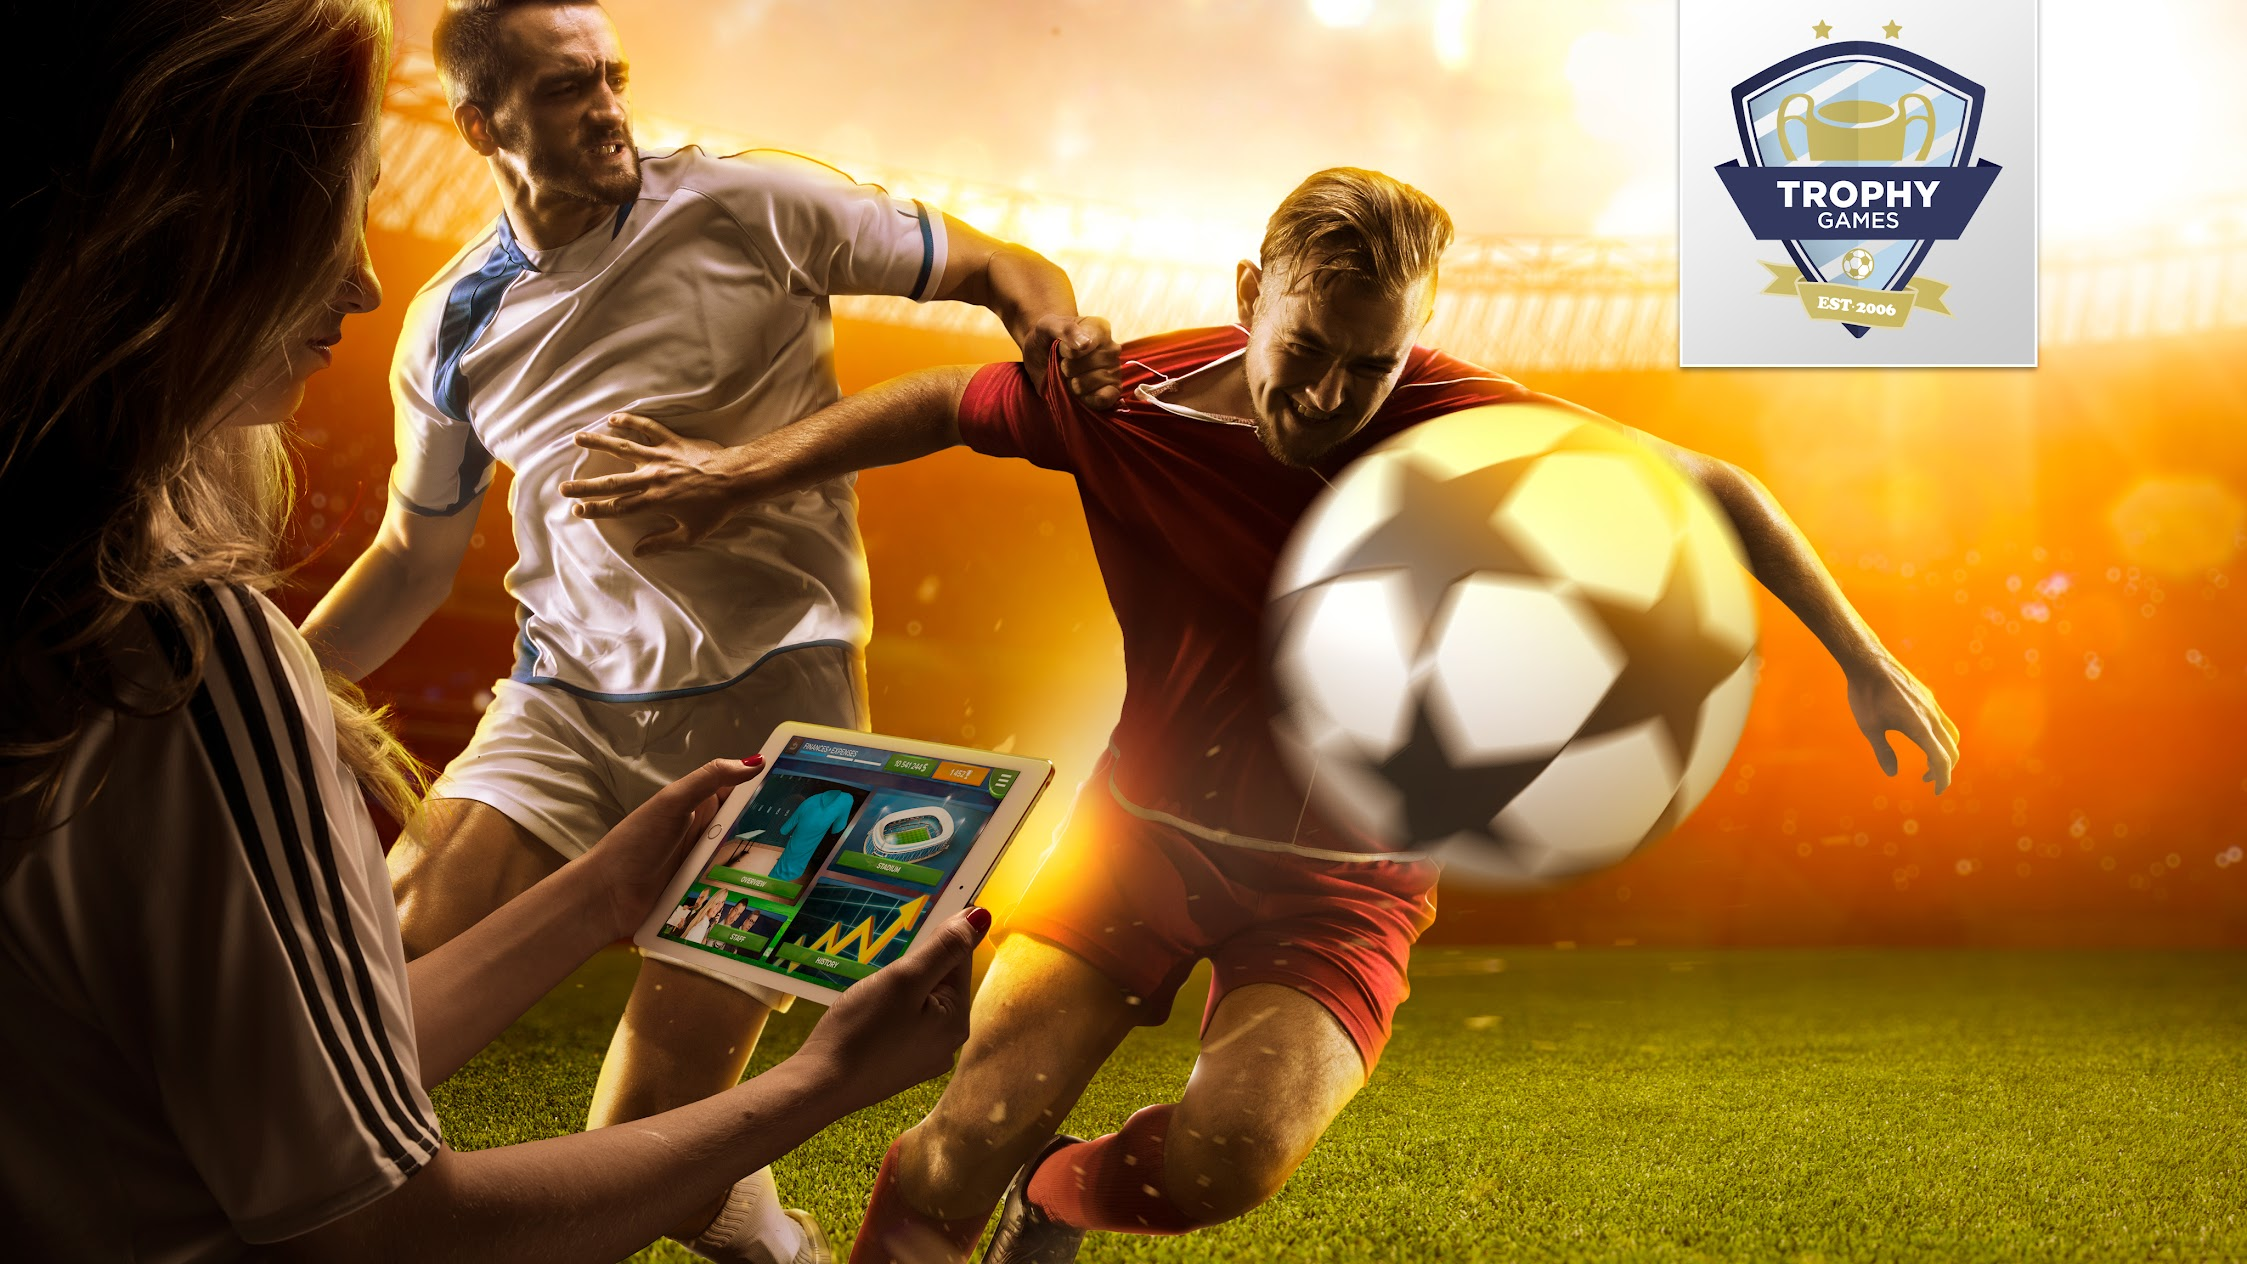 Trophy Games - Football Manager Game Makers